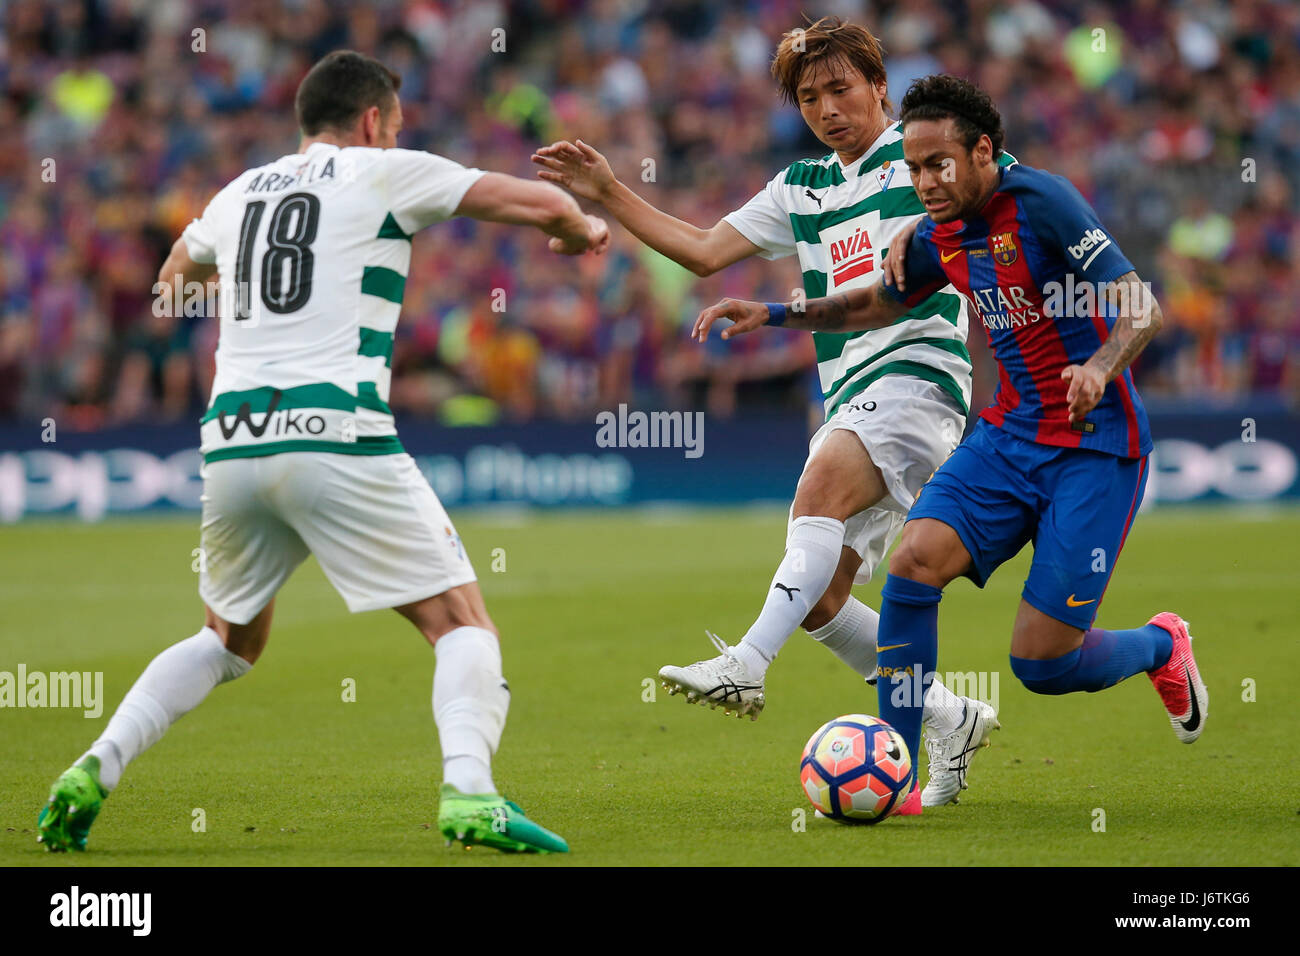 Barcelona, Spain. 21st May, 2017. Barcelona's Neymar (R) controls the ball during the Spanish first division - Stock Image